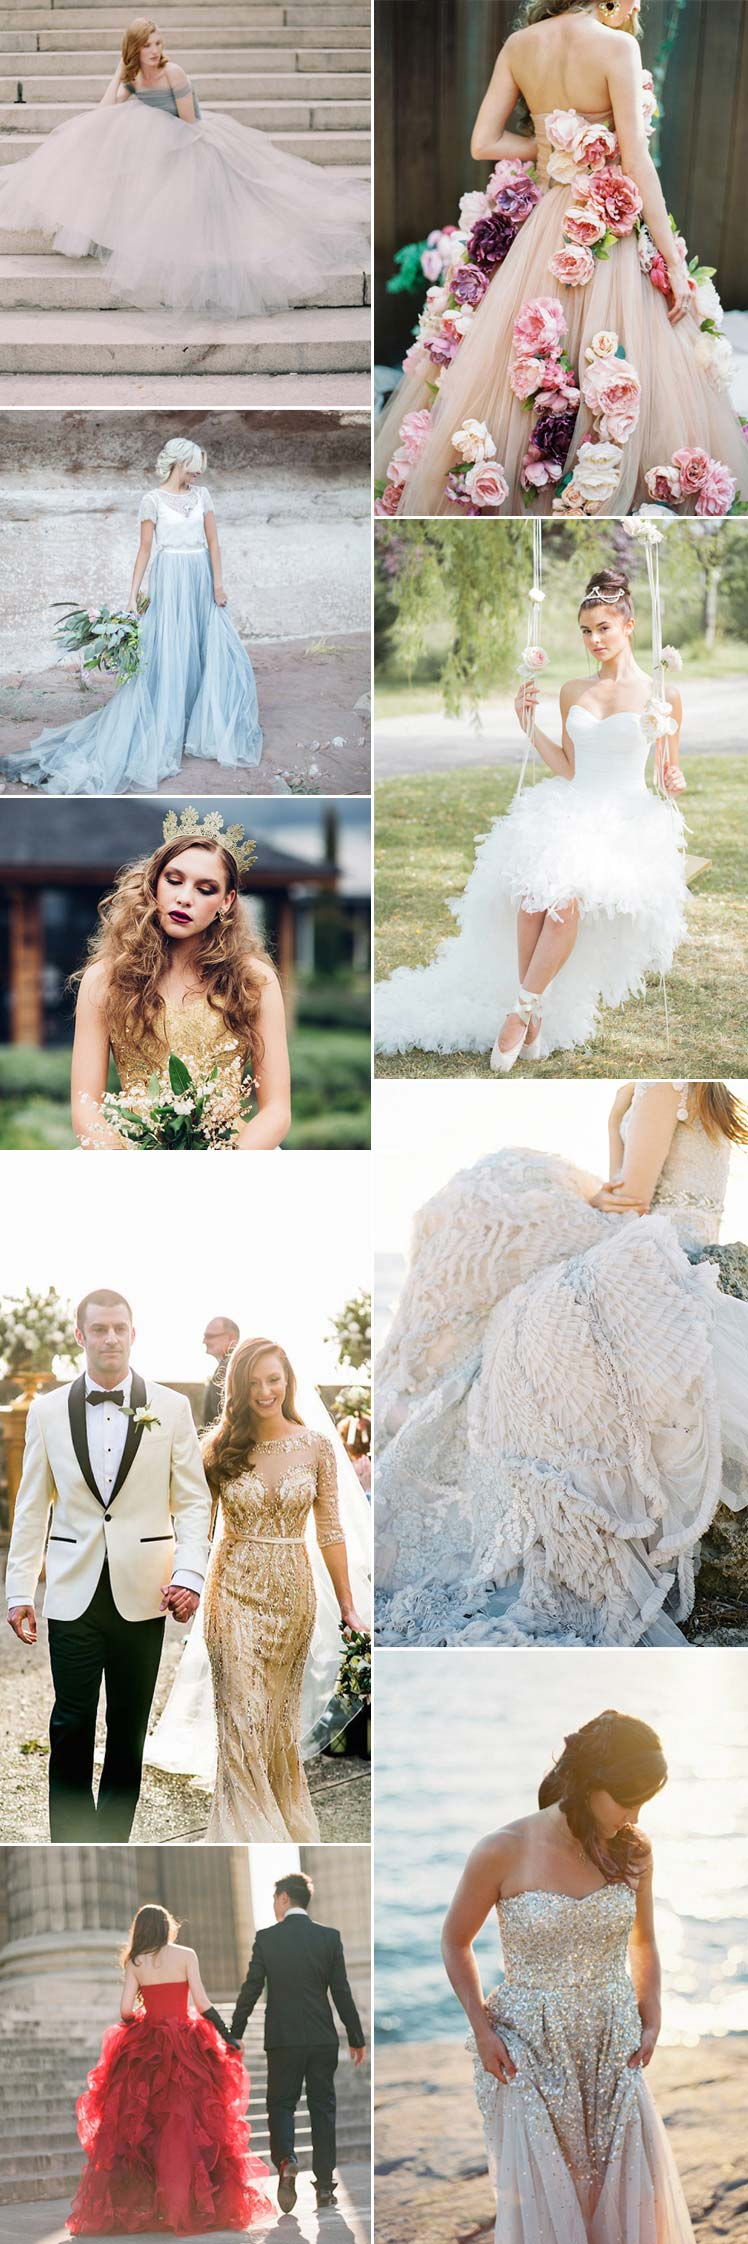 fabulous grande wedding dresses